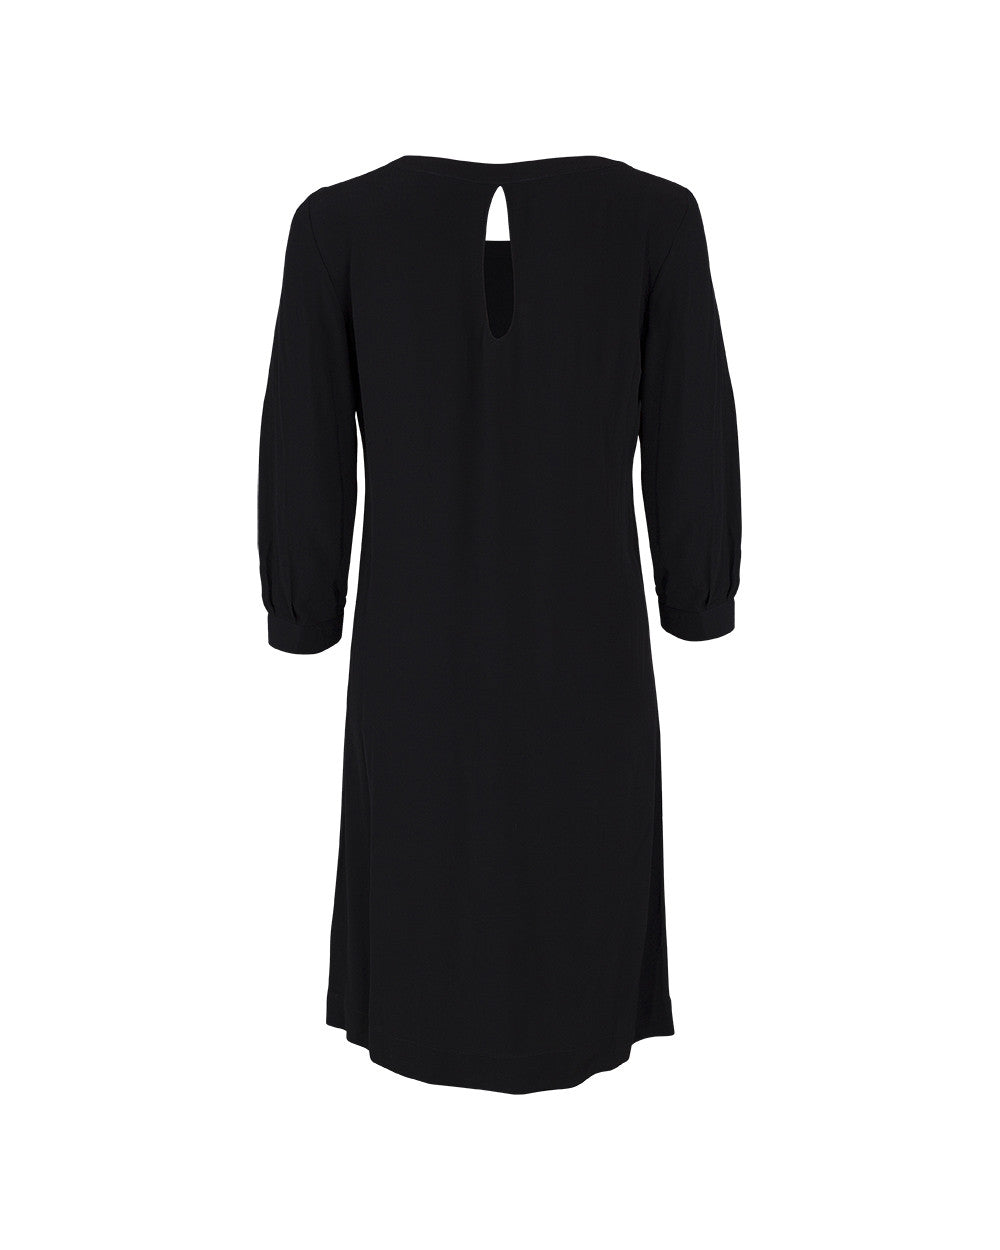 This black work dress has the extra detail of a keyhole neckline at the back to add detail but in a modest way